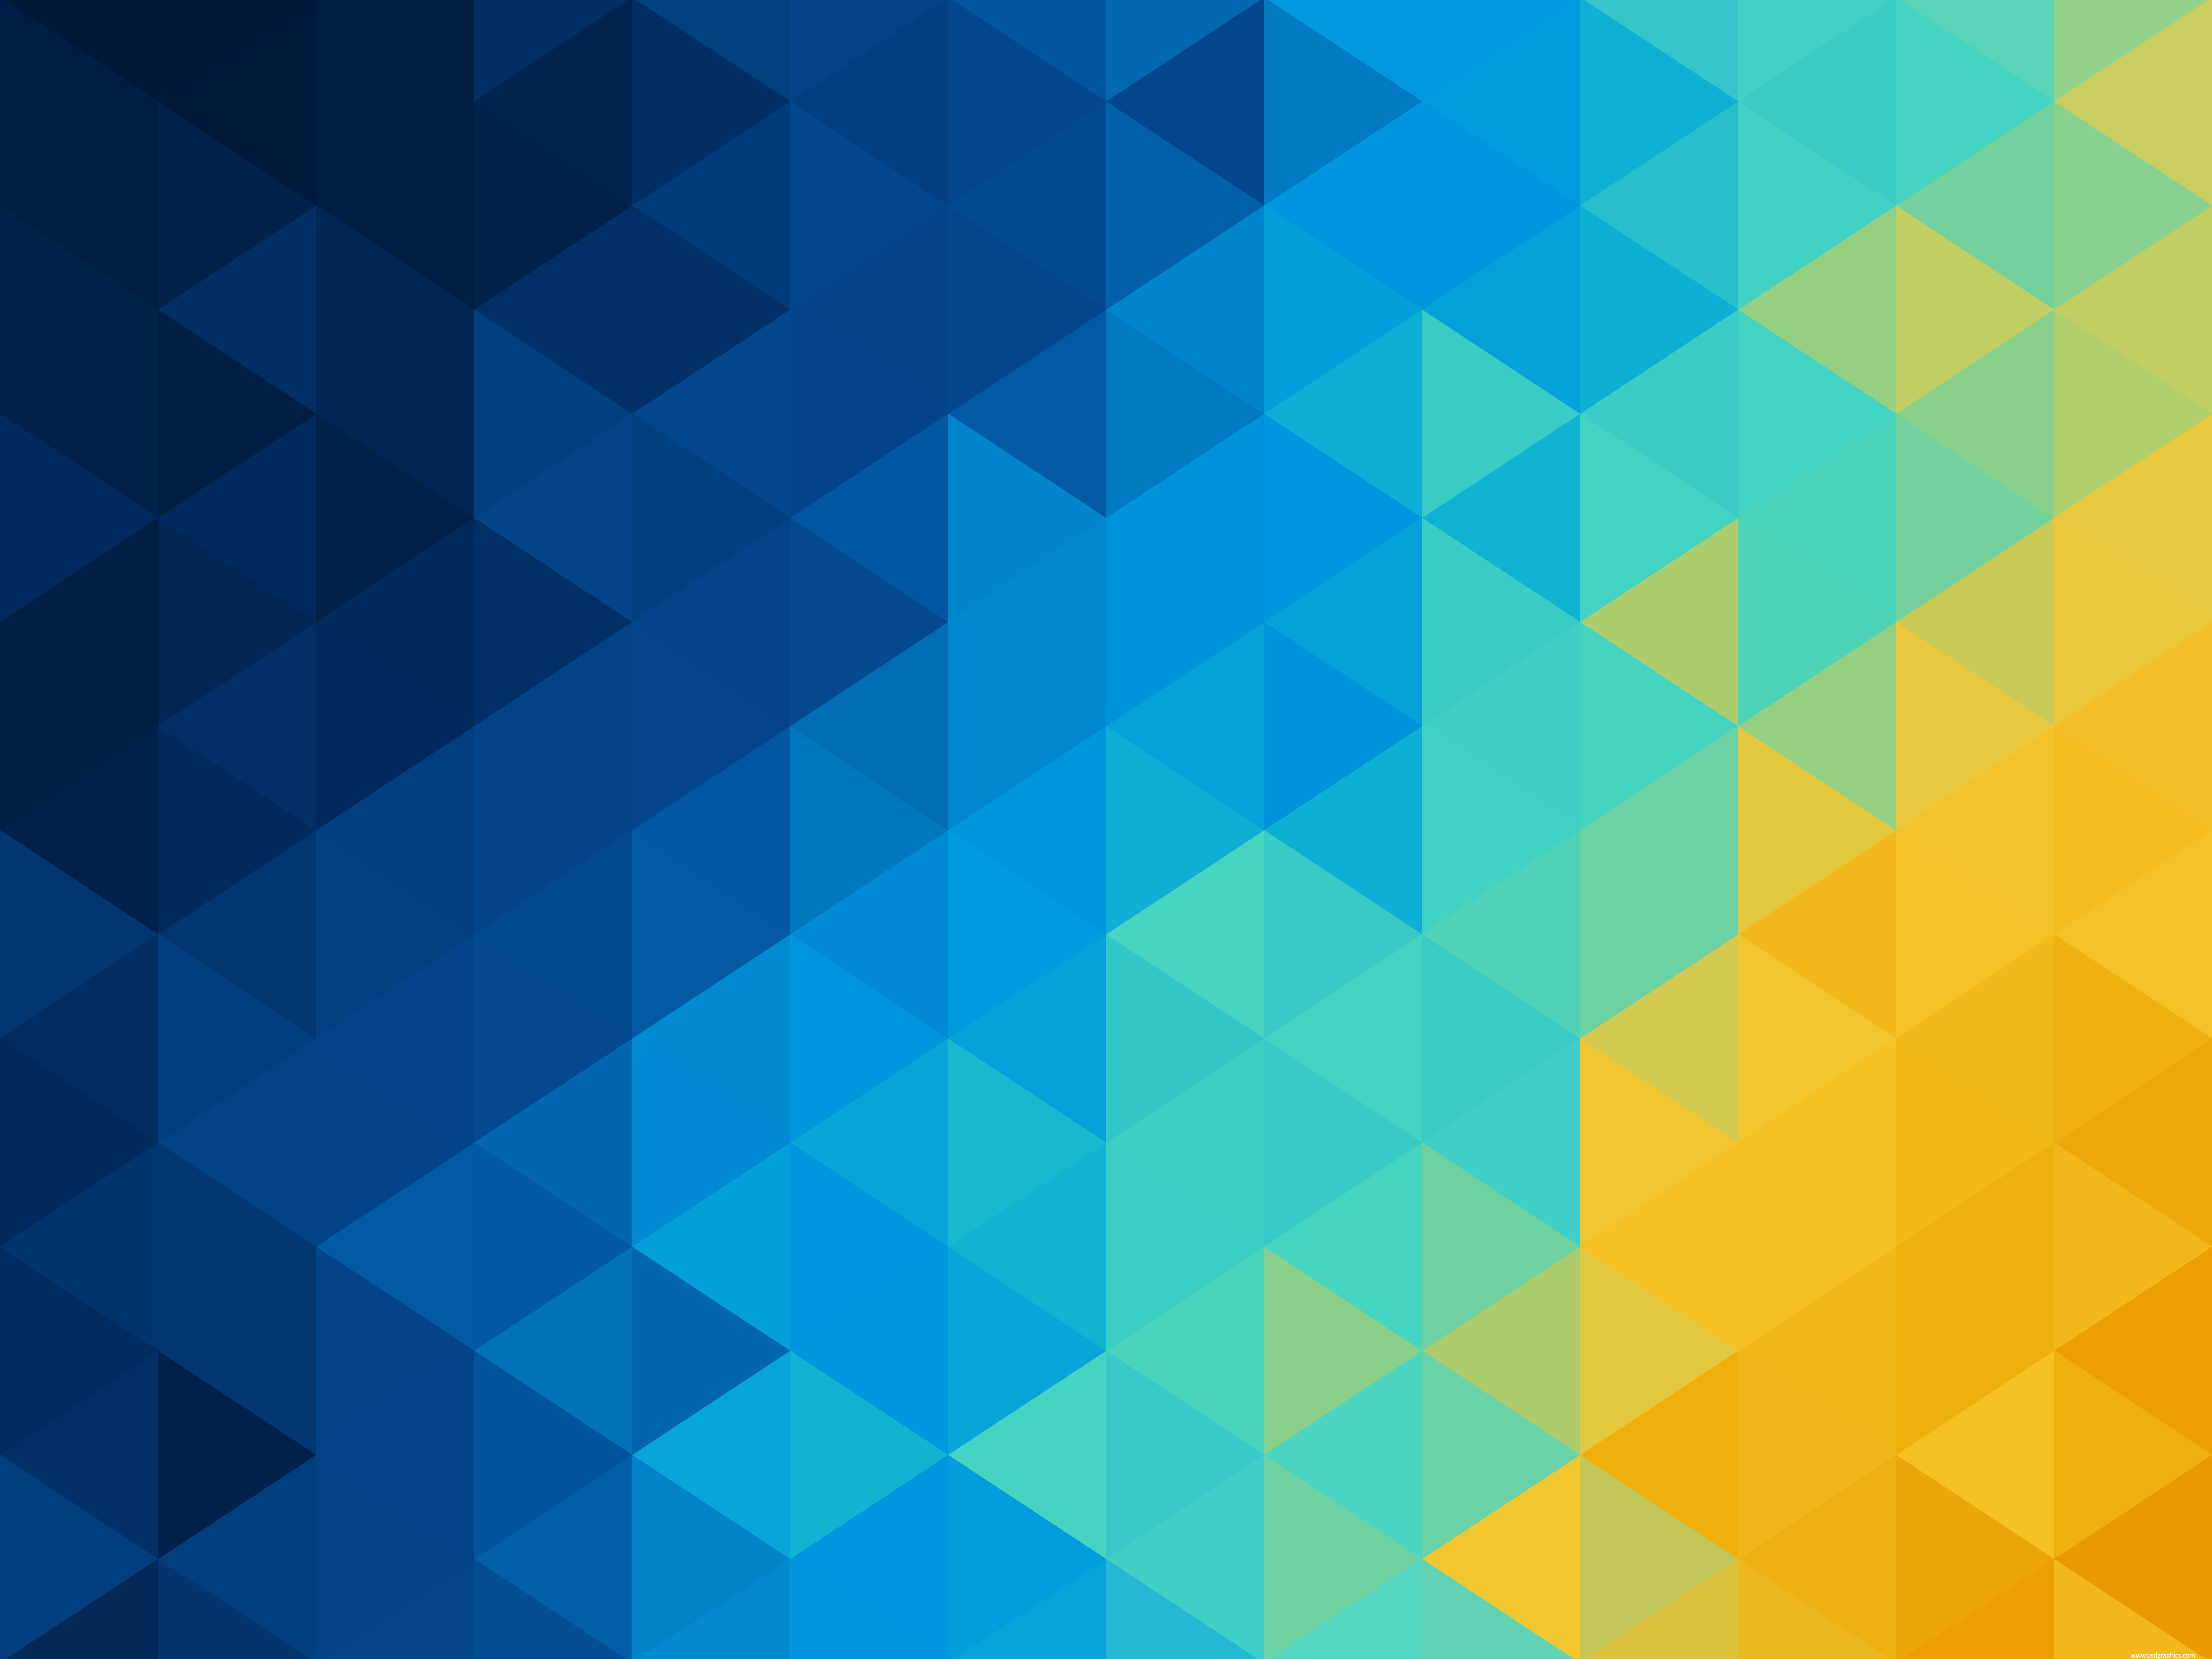 100 Html5 Free Template Bundle Offer From Themewagon 5 Days Of Awesome Wallpapers Geometric Wallpapers Techspot